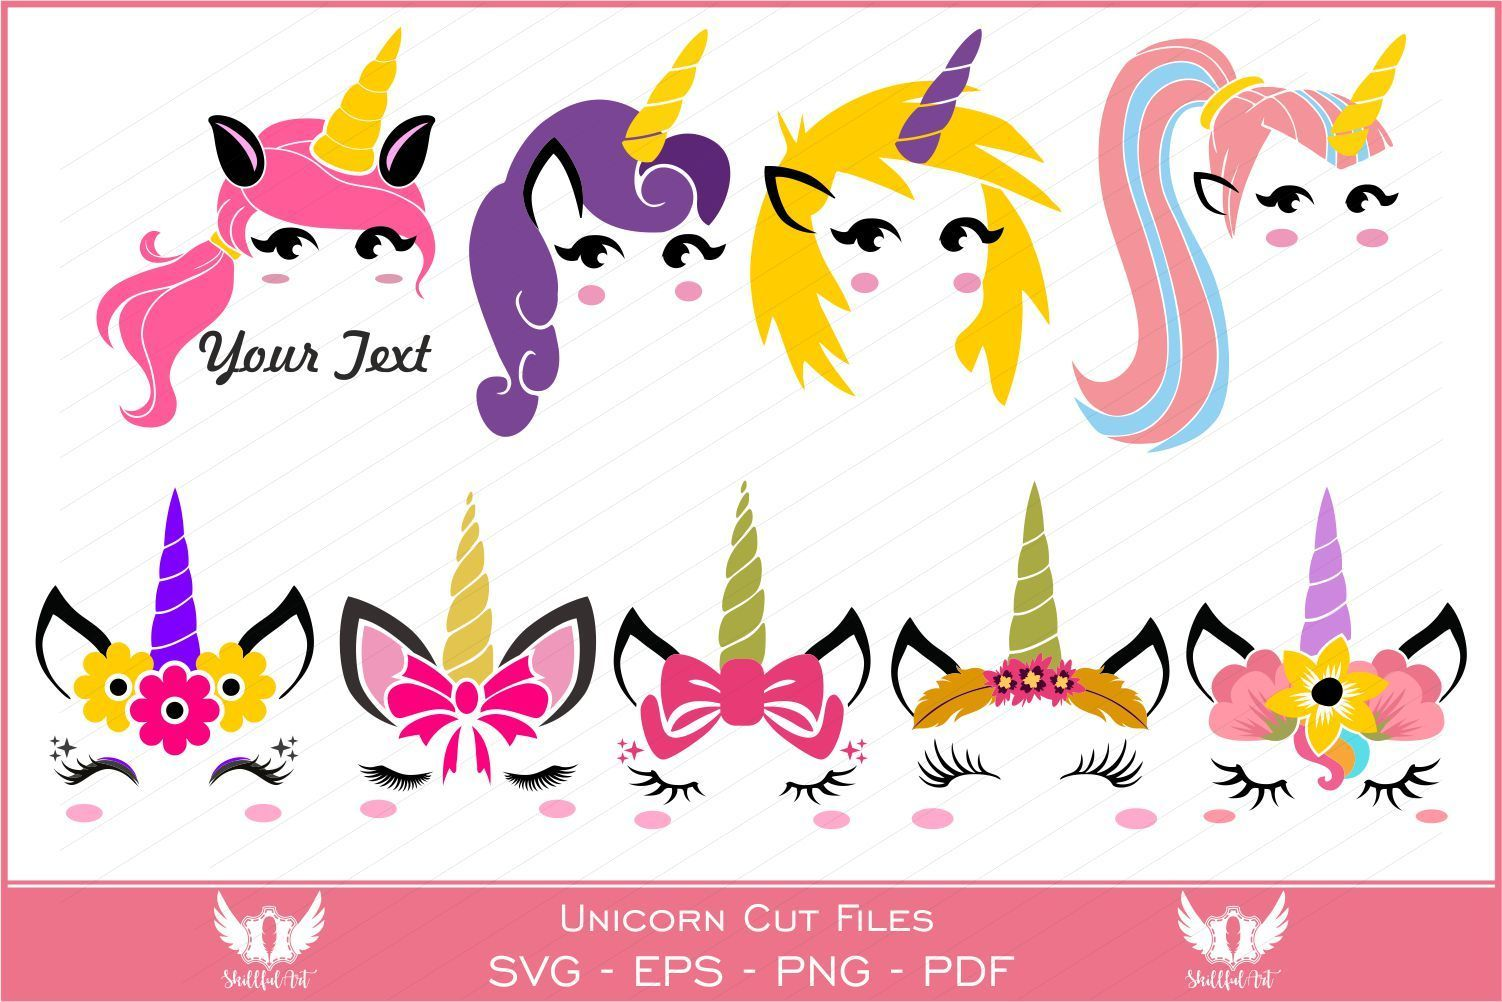 Unicorn (Graphic) by Skillfulart · Creative Fabrica #programingsoftware Can be used with the Silhouette cutting machines, Cricut, or other program/software that accept these files. You will receive the... #programingsoftware